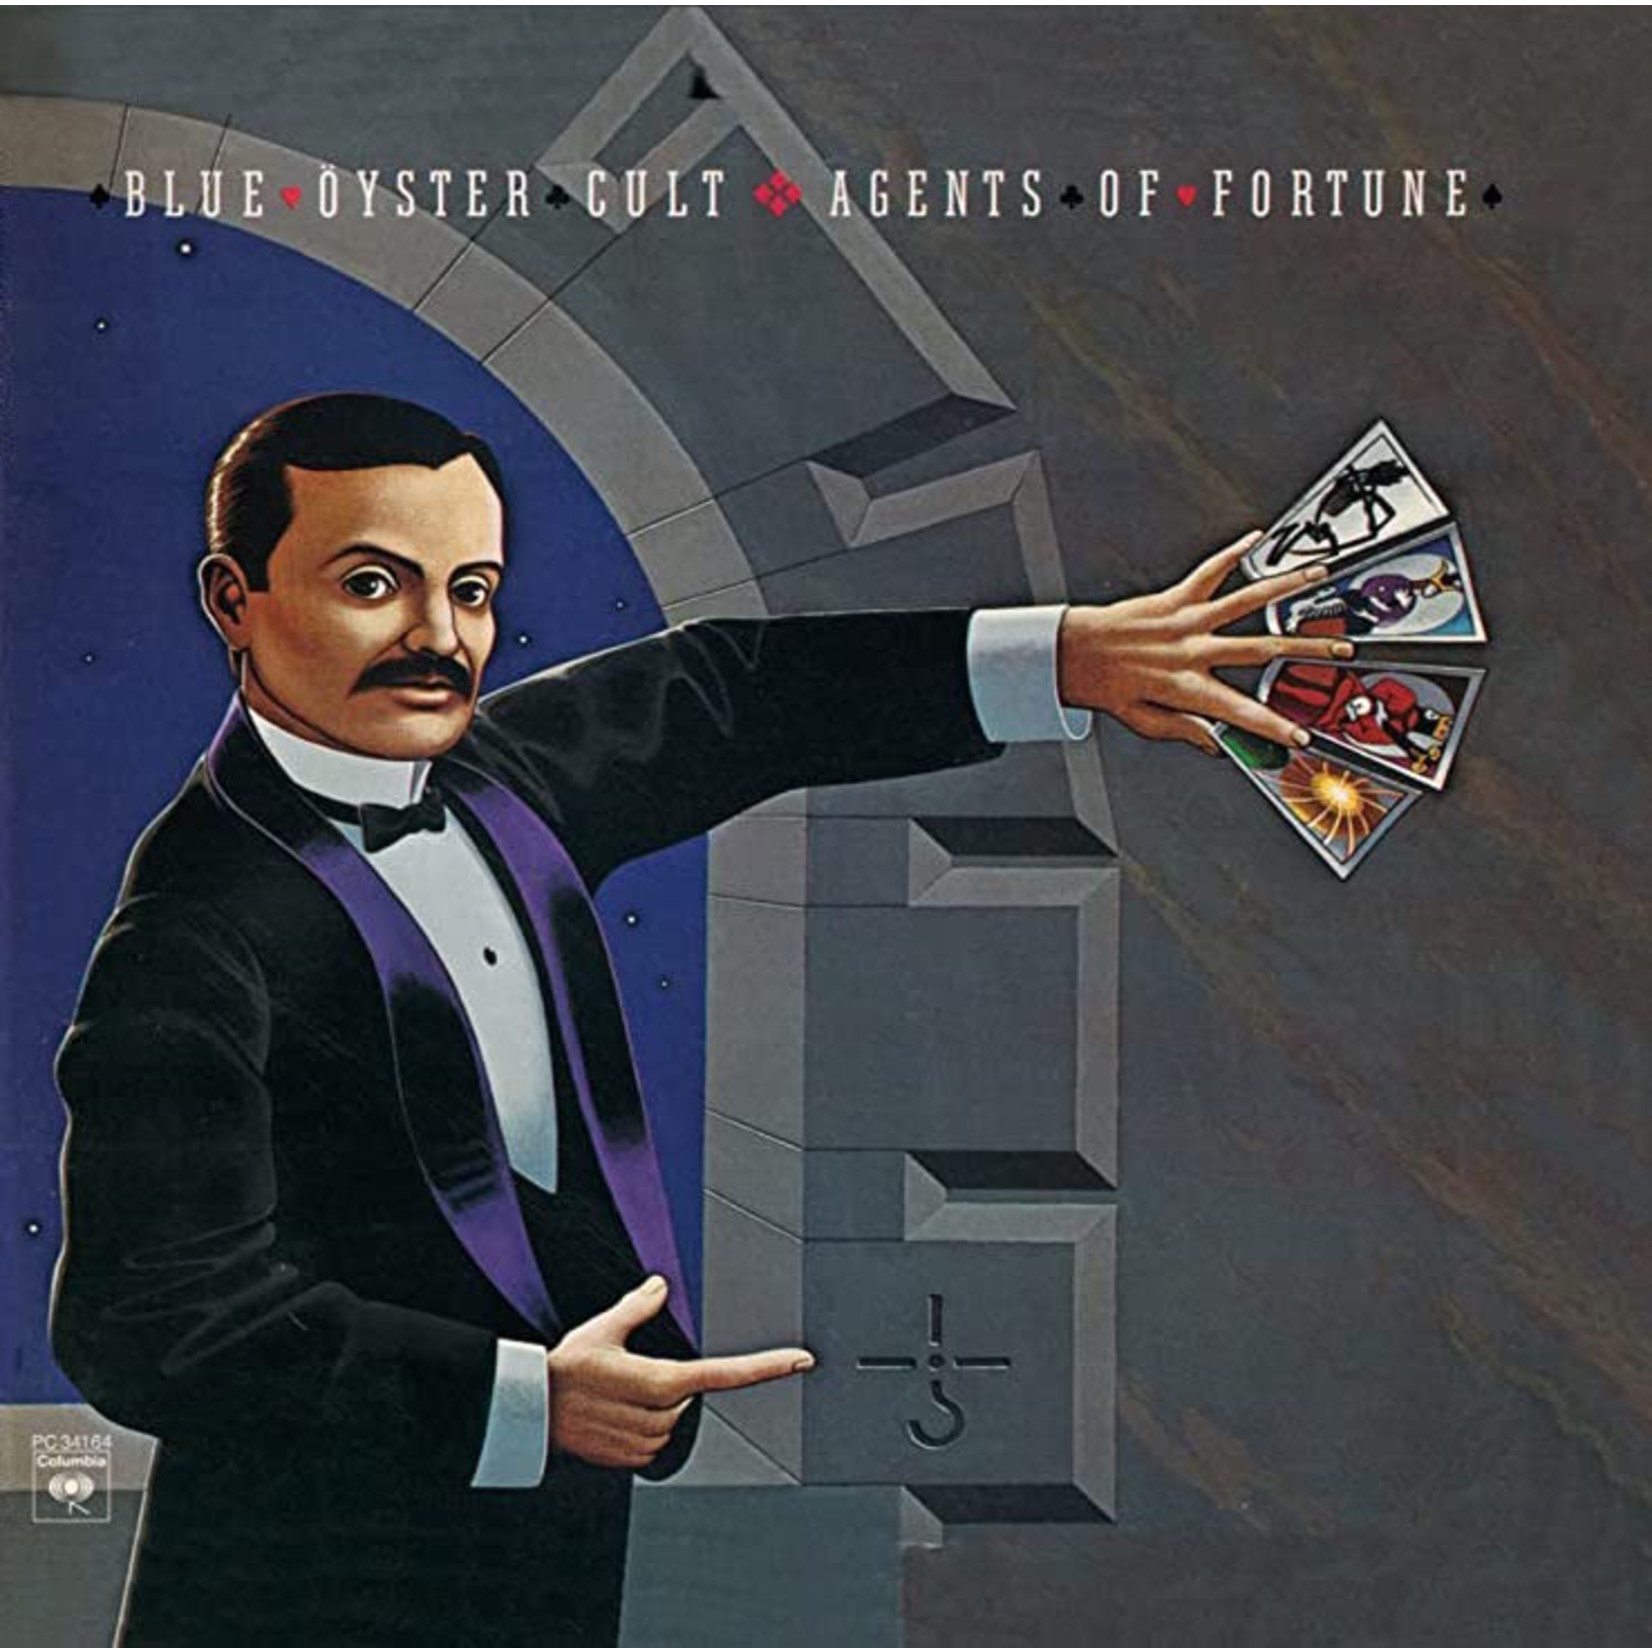 Blue Oyster Cult: Agents Of Fortune [MUSIC ON VINYL B.V.]